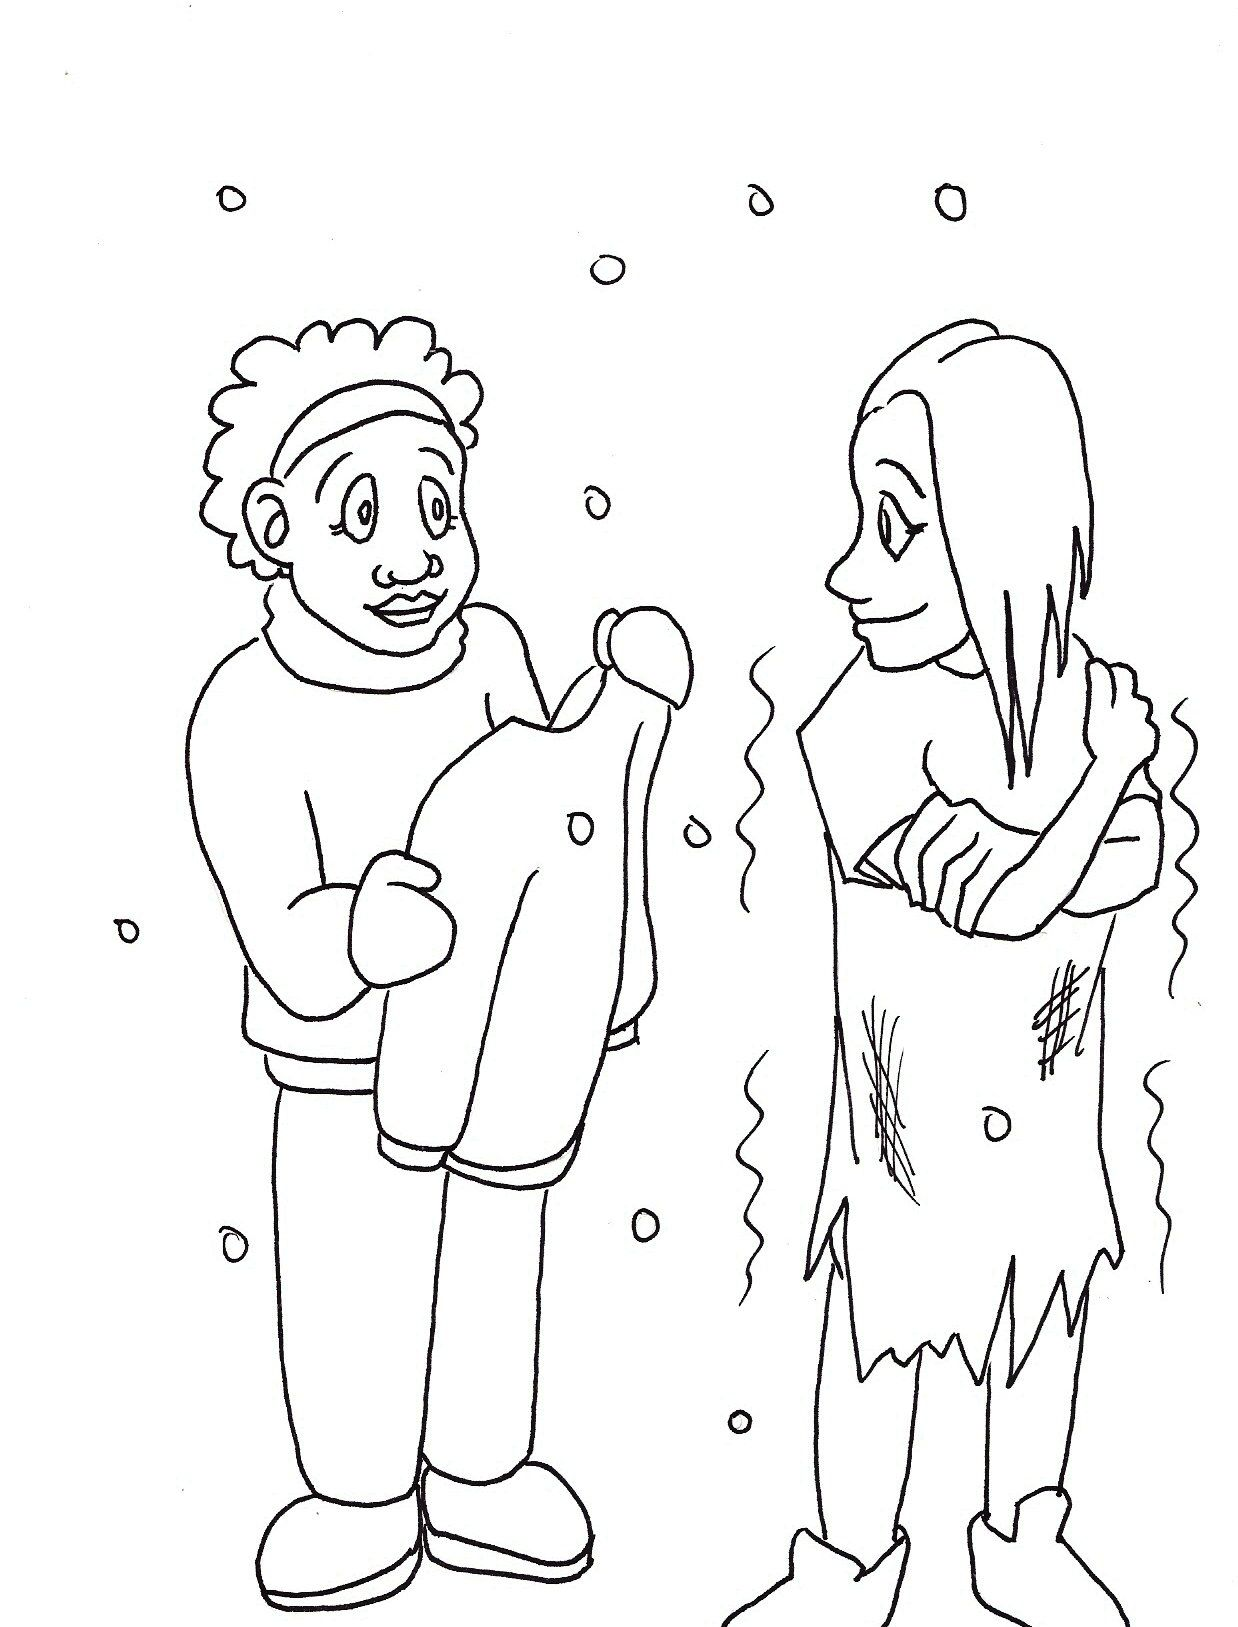 Colouring Pages Coloring Pages Bahai Children Generosity